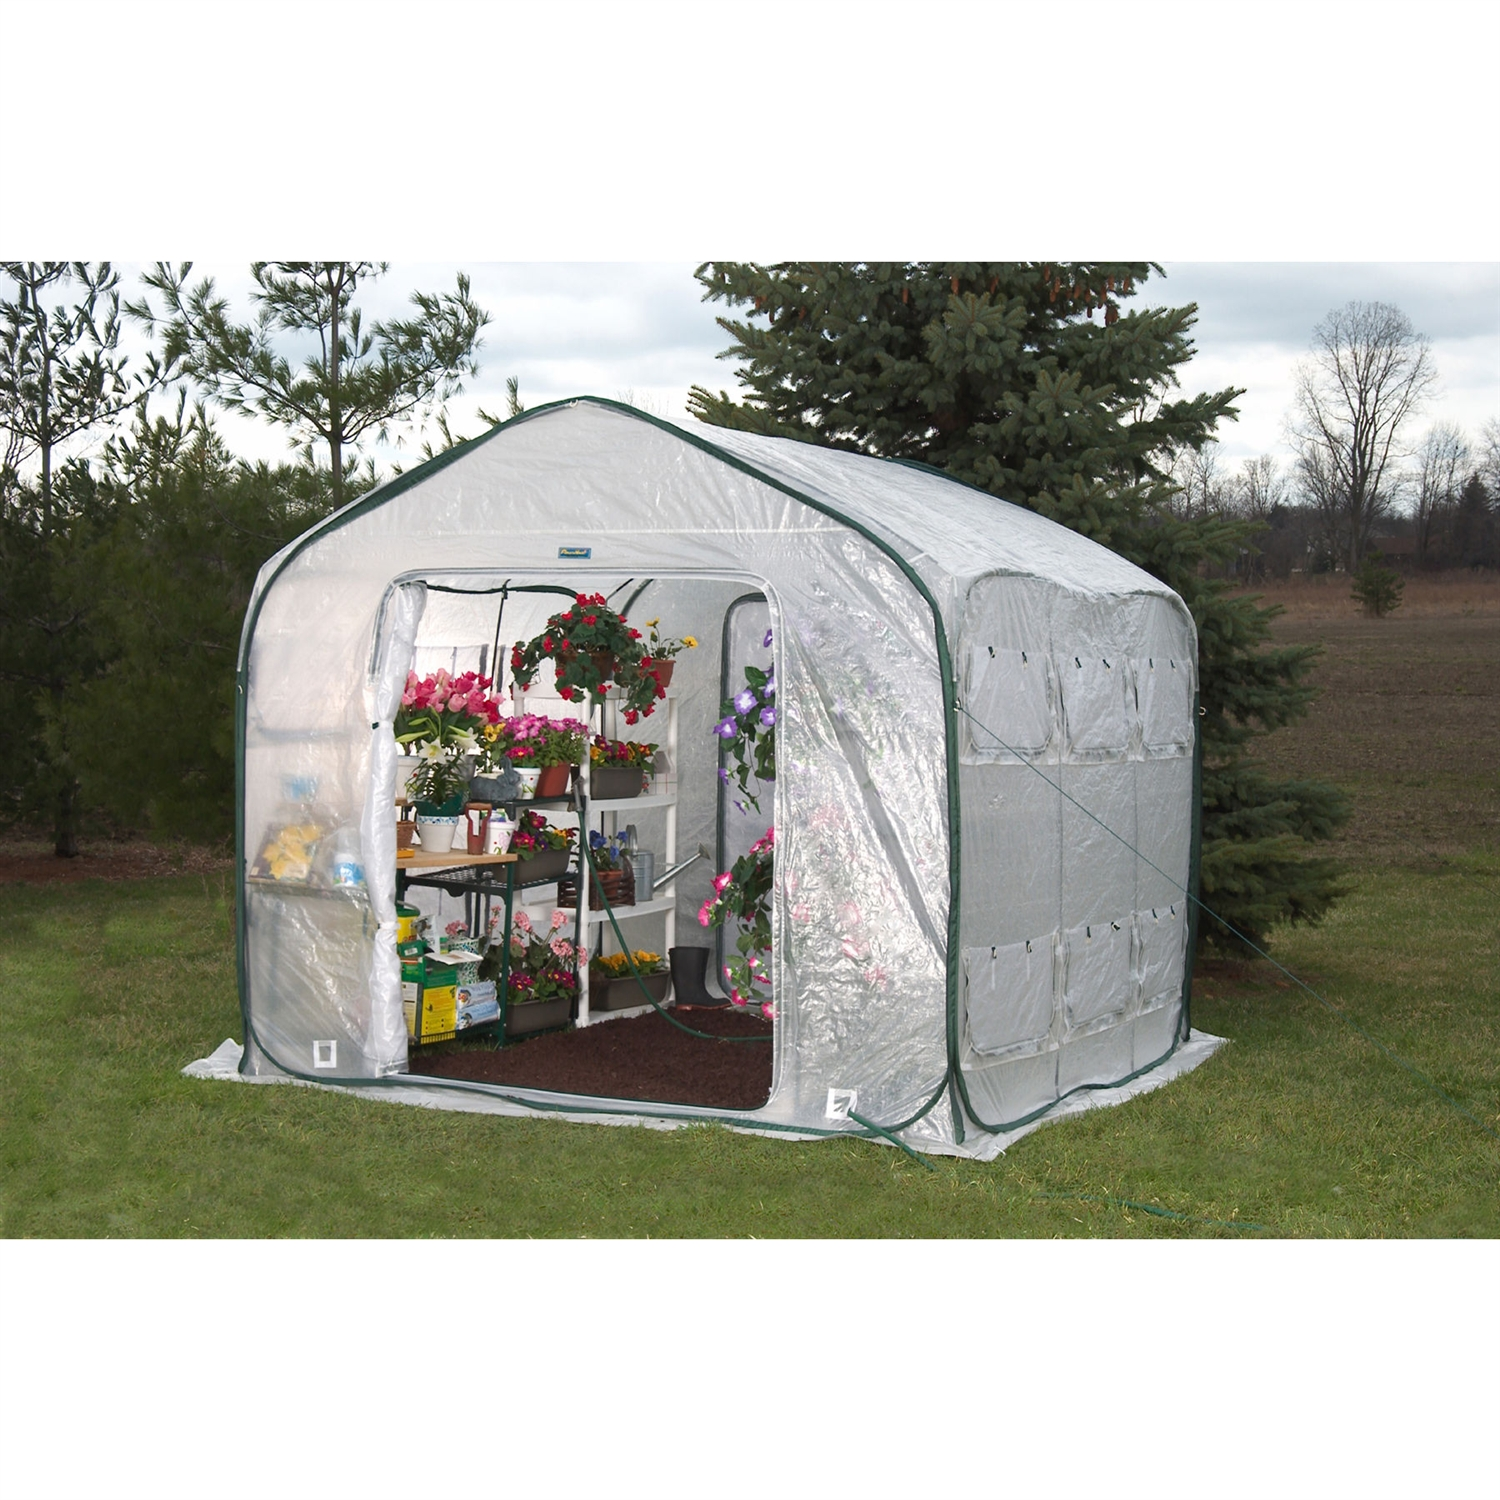 "Farm-House Home Garden UV Resistant Greenhouse (9' x 9'), WFHG270 : Extend your growing season, protect your plants, and harvest the Farm-House benefits. The unique Farm-House design allows you to zip two or more greenhouses together. This enormous yet totally portable option doubles as a convenient storage shed when you're not growing. The Farm-House features two large zippered doors and twelve windows with screens for easy access, optimum ventilation, and pest protection. Open the doors and windows to create the perfect environment for hardening of plants. Close the screens and windows to promote and maintain high temperature and humidity levels. All Flower-House greenhouses are constructed with the incredibly durable Gro-Tec material. Gro-Tec is UV resistant, weatherproof and features rip stop protection.  Two fully screened doors create optimum air circulation for accelerated growth; Twelve screened windows provide optimum ventilation and pest protection; Improves climatic conditions in all geographic locations; Sets up easily on soil or hard surface, indoors or outdoors; Weatherproof and UV resistant Gro-Tec polyethylene material with rip stop protection; Compact and lightweight; Four convenient accesses for water hose or power cord.  Comes with instruction manual and greenhouse guide; 12"" long ground stakes, nylon cord high wind tie-downs, shade cover, fiberpoles, and carry pack included. Night time temperatures inside your Flowerhouse greenhouse will drop to outside temperatures without an additional heating source;  3 year limited warranty; Please Note: Warranty is not valid until the warranty card is filled out and returned within 14 days of purchase; Features: Built-in Air Flow Vents, No Foundation Needed, Portable, Light Weight."